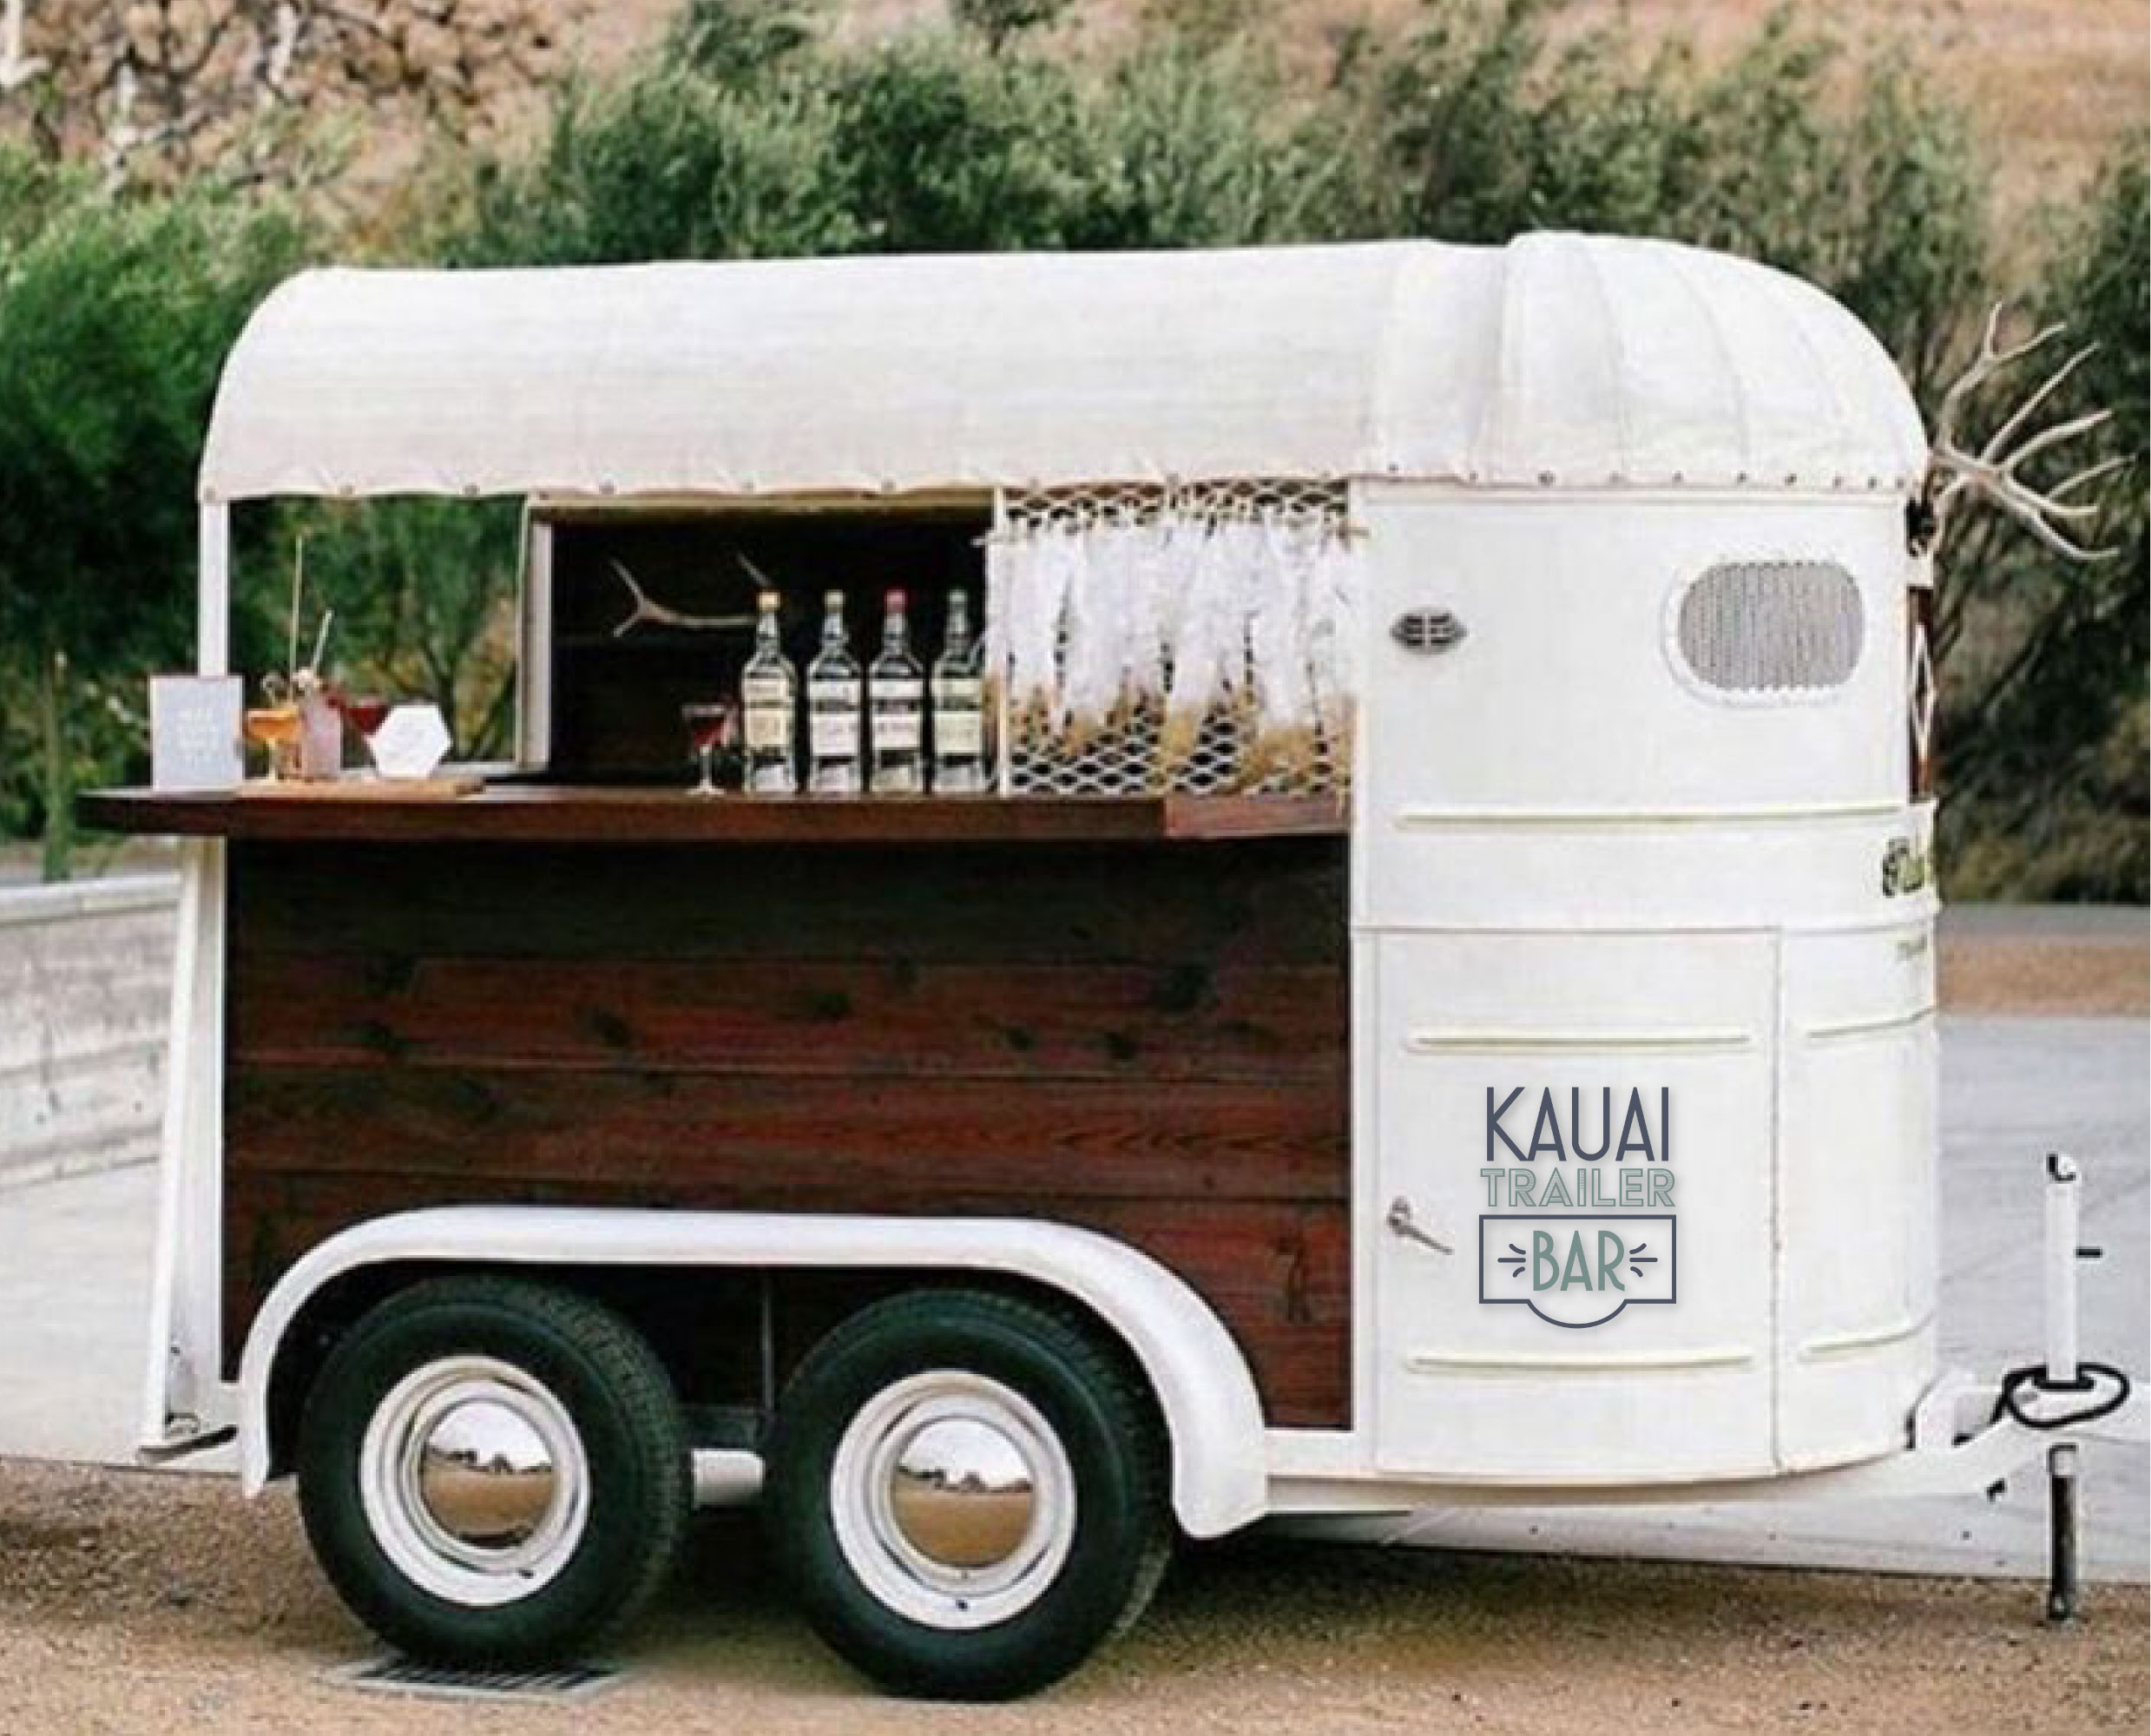 kalona - This vintage 2 horse trailer will be the social lite of the party - it has been perfectly converted to the ultimate touch of class and sass.